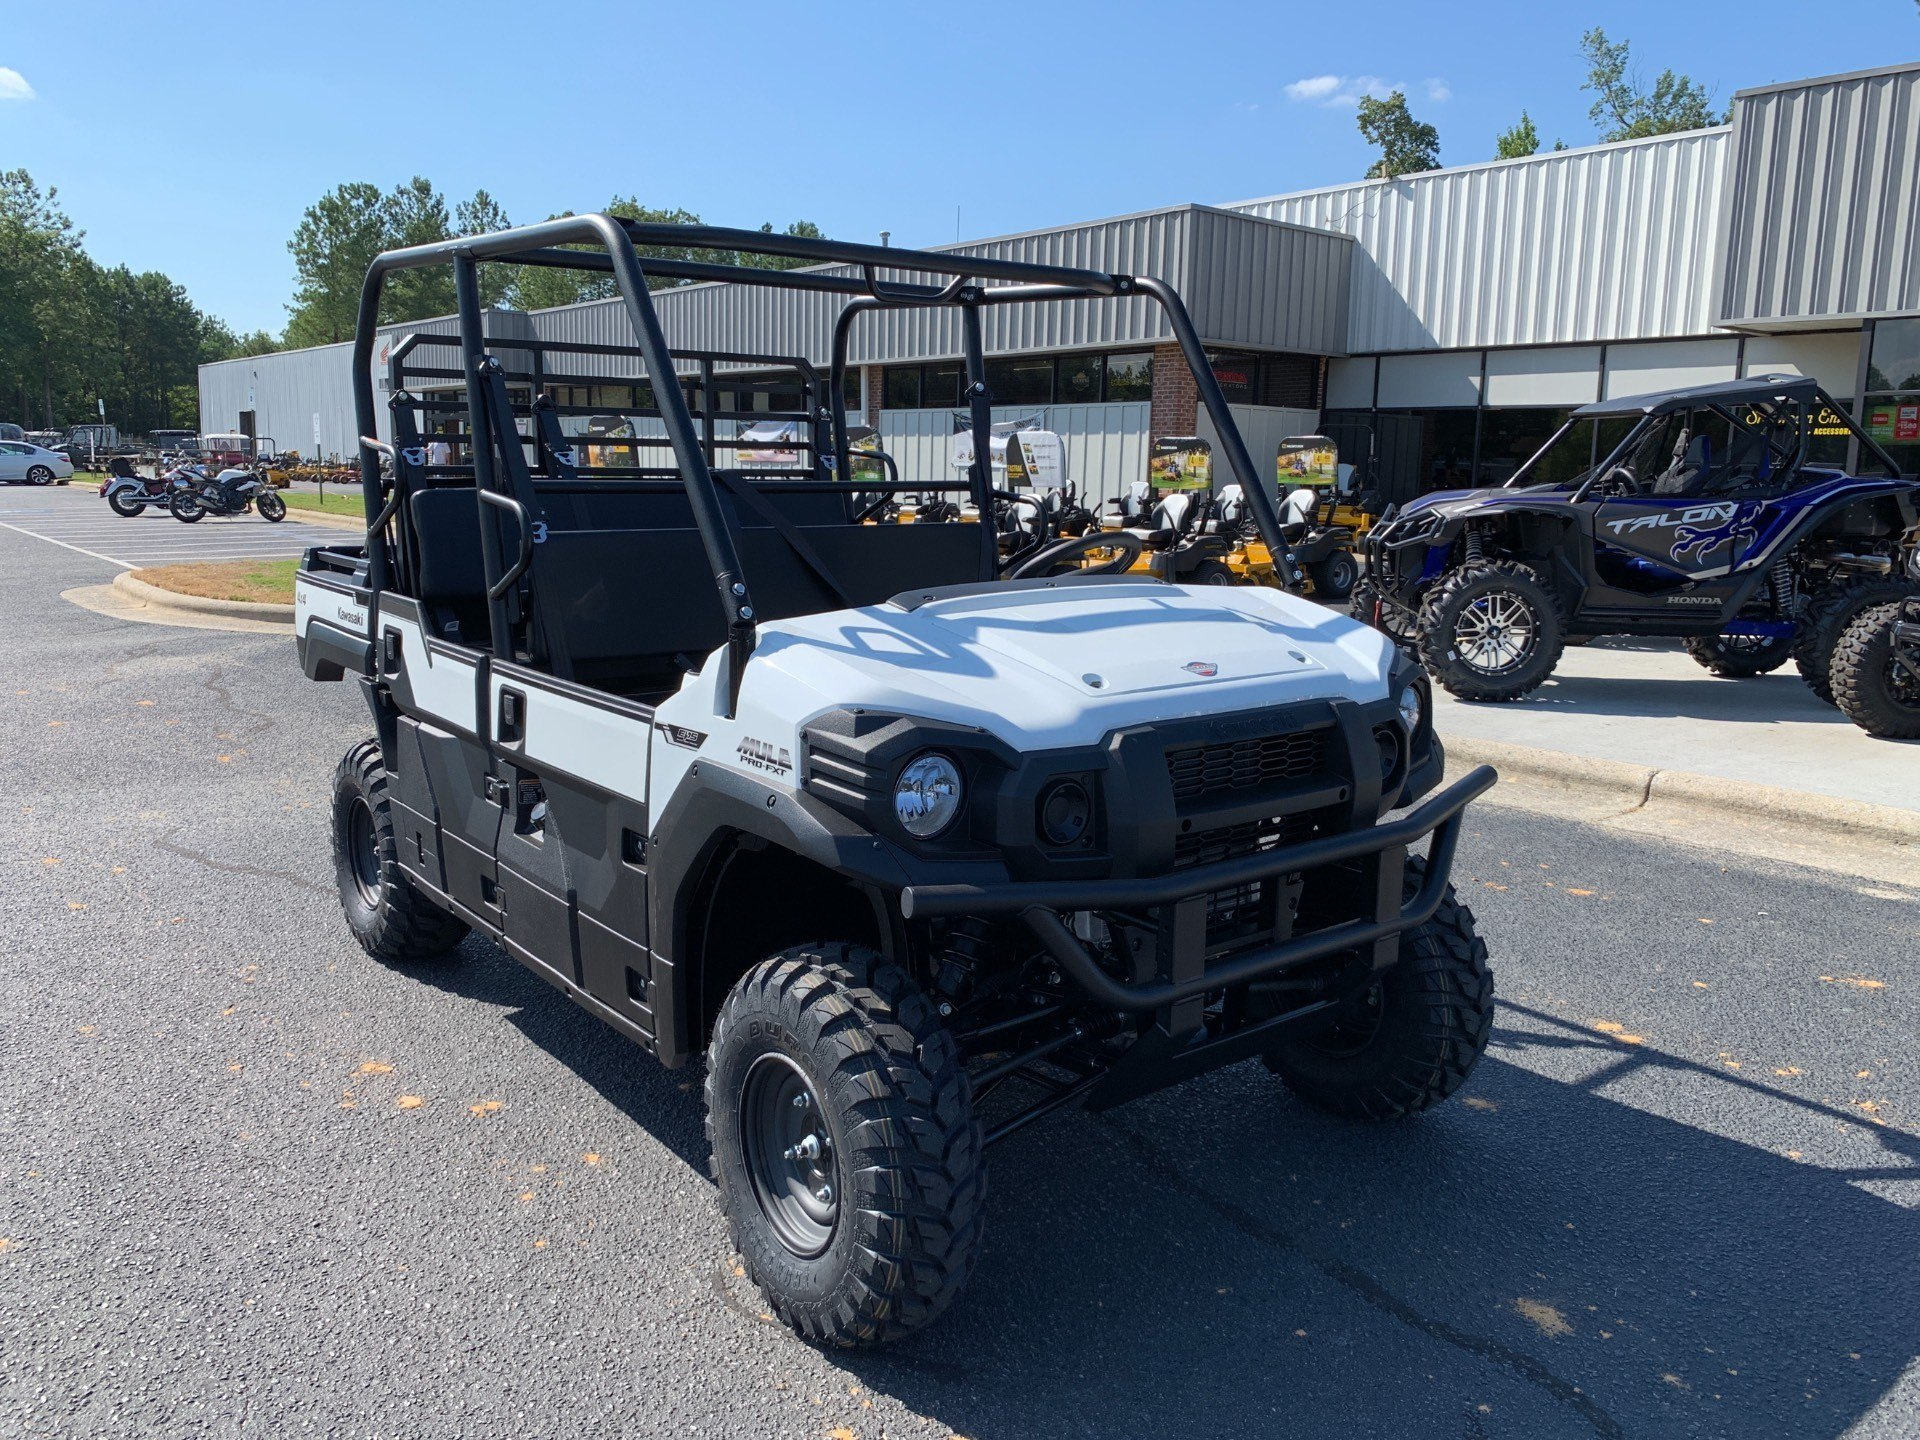 2020 Kawasaki Mule PRO-FXT EPS in Greenville, North Carolina - Photo 3